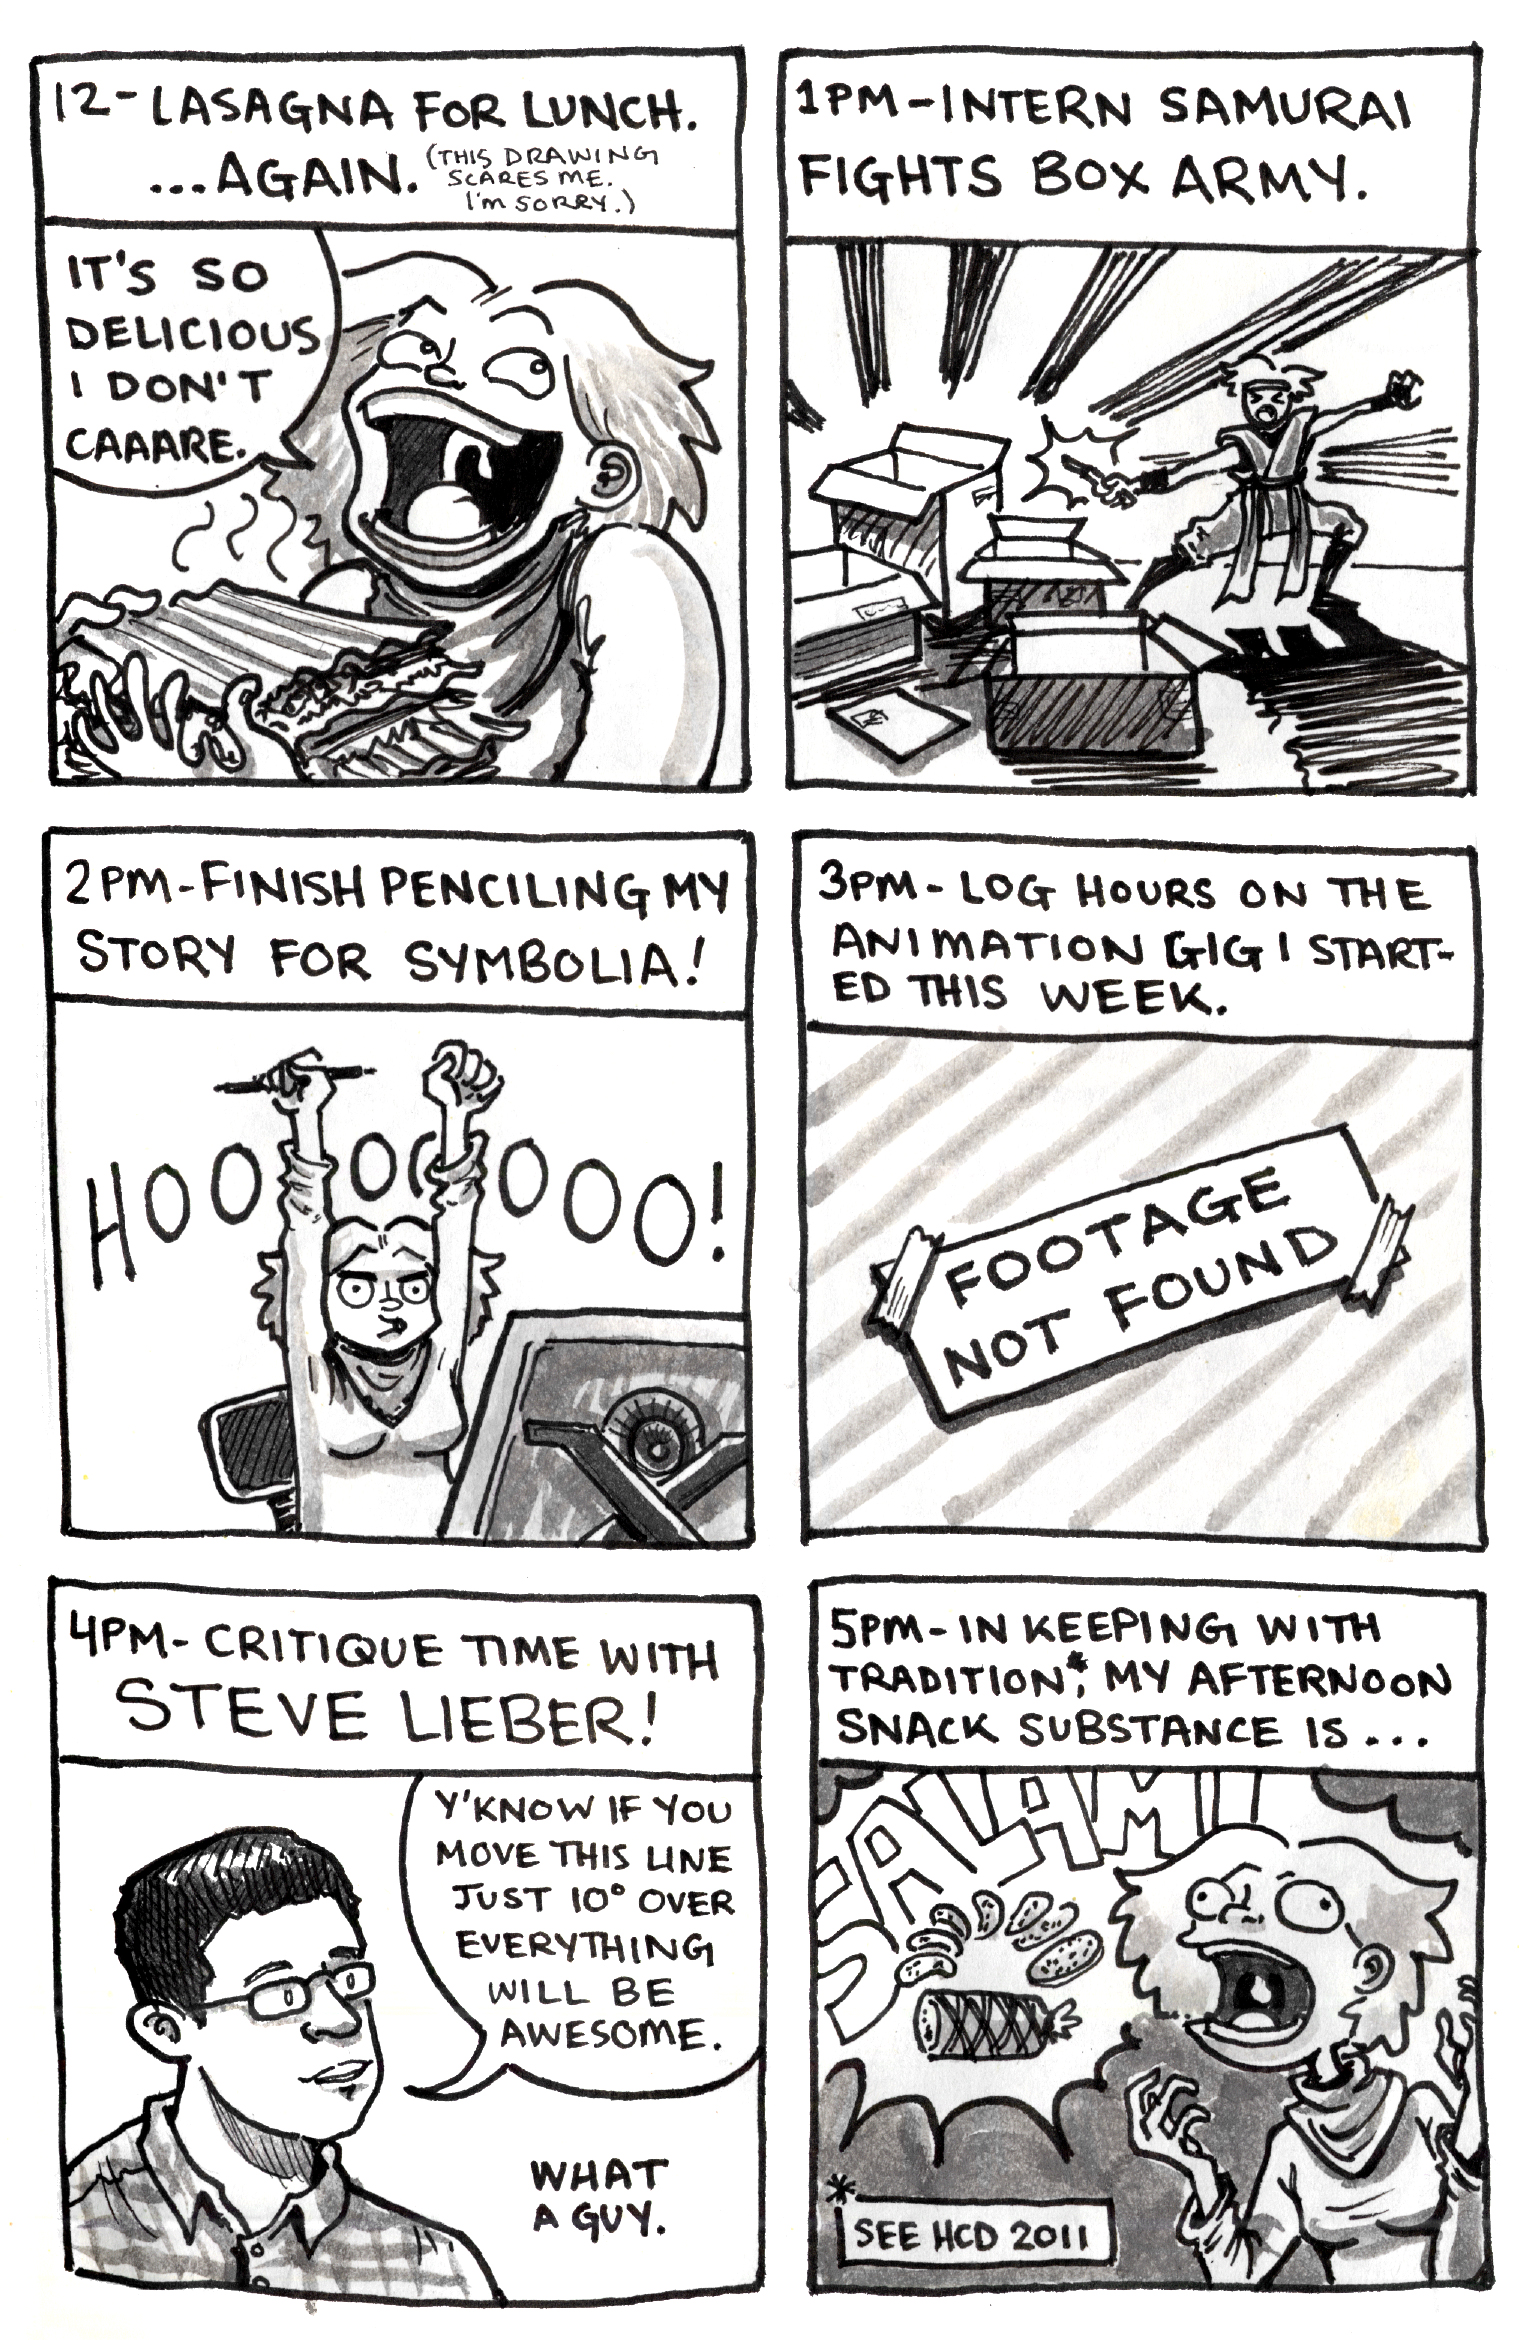 Hourly Comic Day 2013 – Lucy Bellwood